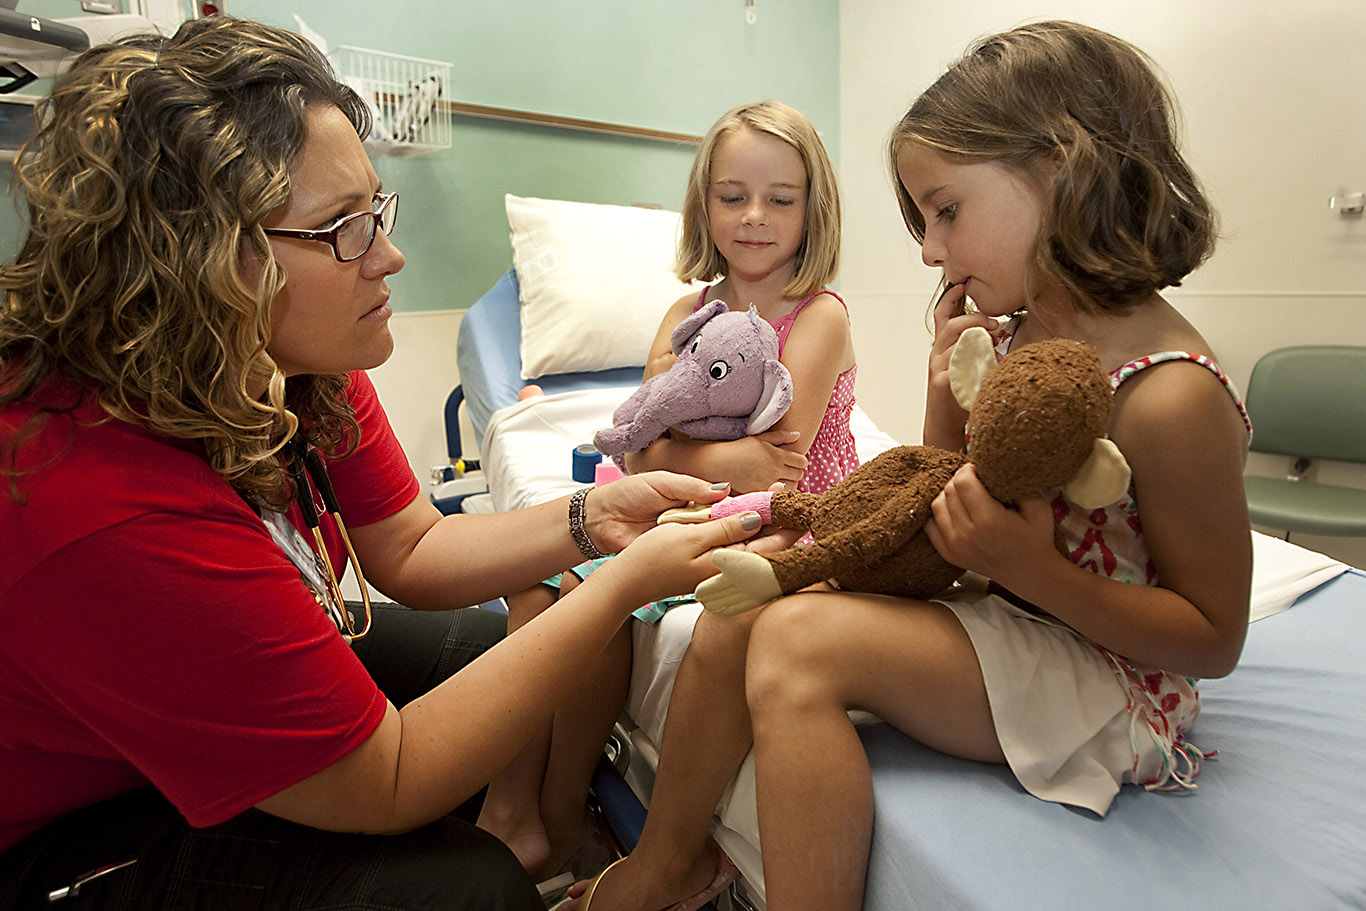 Two girls hug their stuffed animals as a nurse pretends to tend to the stuffed animals' injuries.